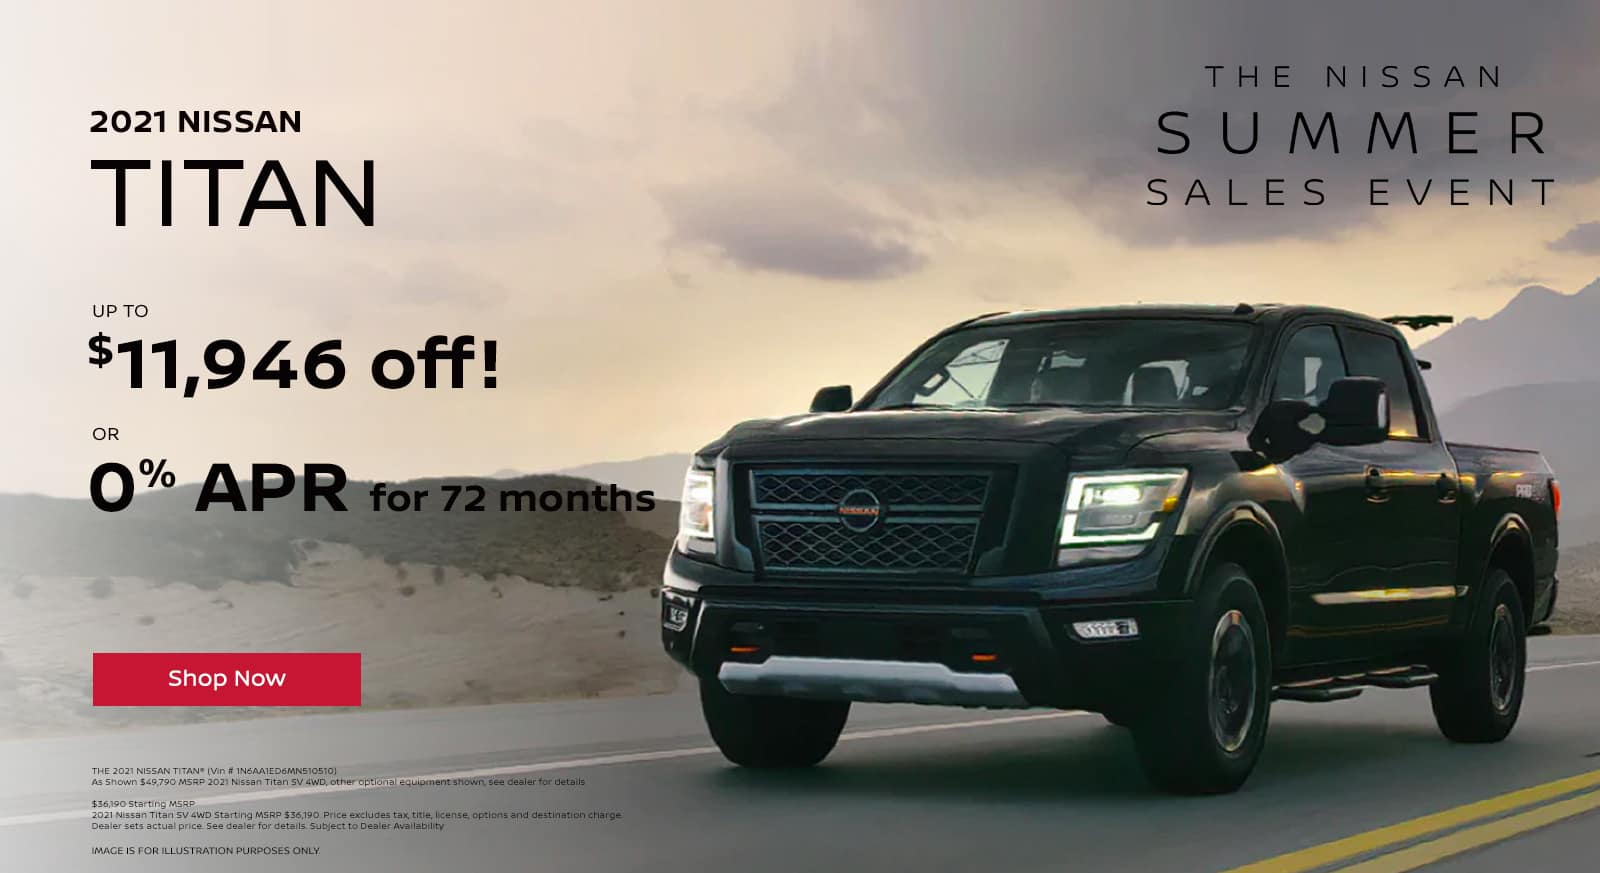 2021 Titan. Up to $11,946 off! OR 0% APR for 72 months.